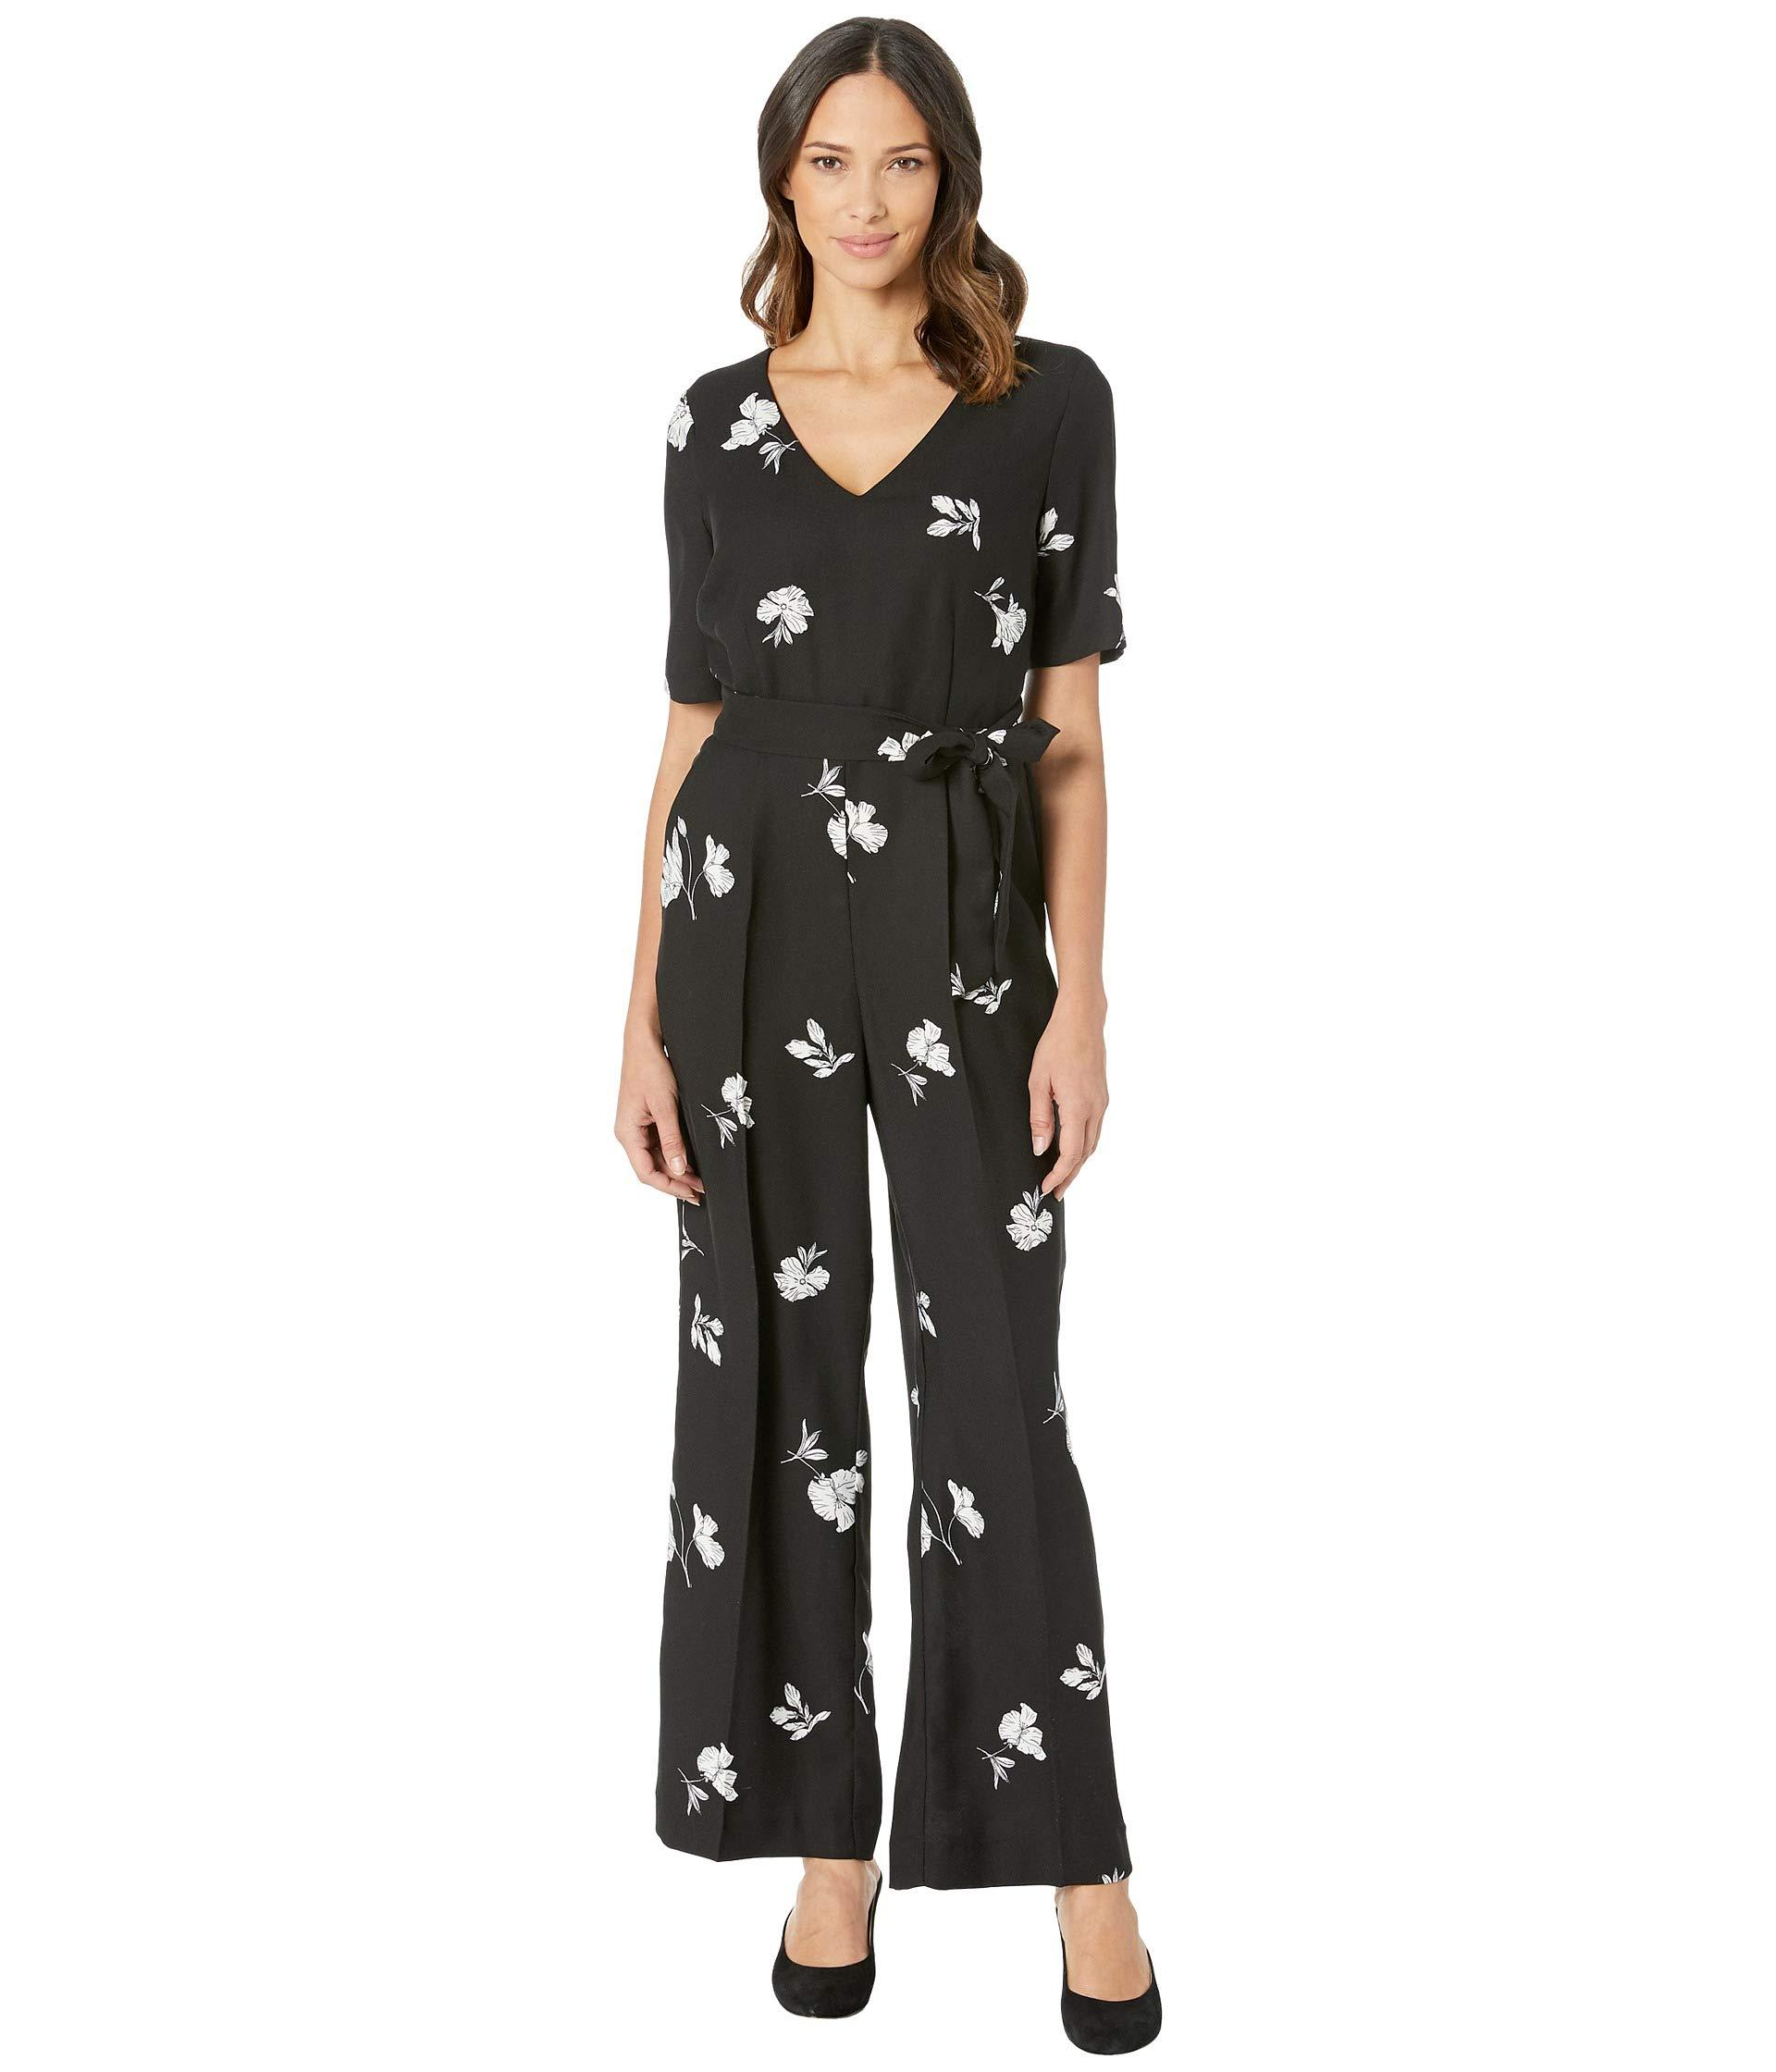 9dd5f2960202 Lyst - Vince Camuto Elbow Sleeve Tossed Flowers V-neck Jumpsuit ...